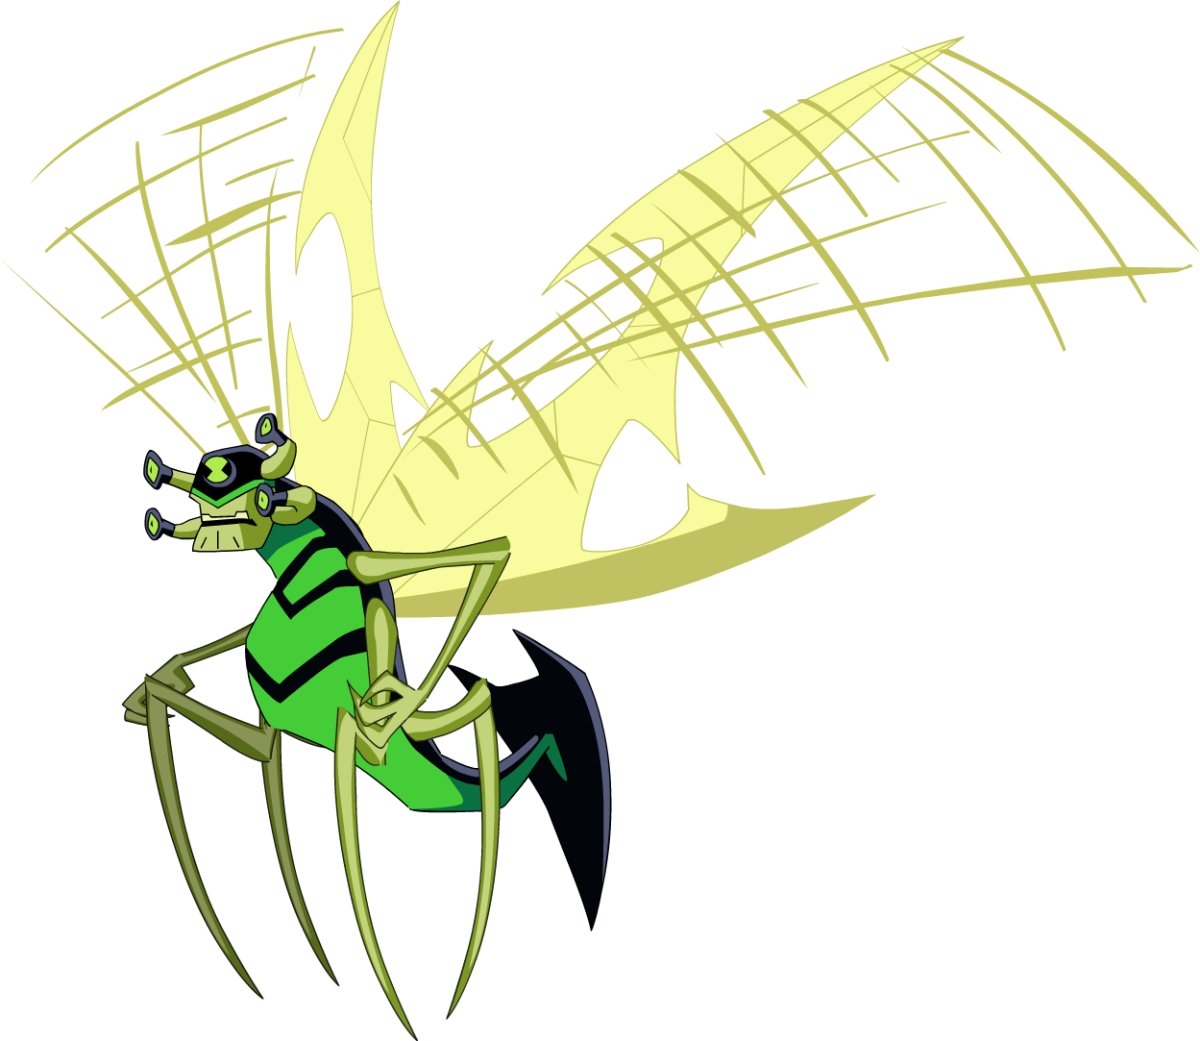 Stinkfly's appearance in Ben 10: Omniverse.